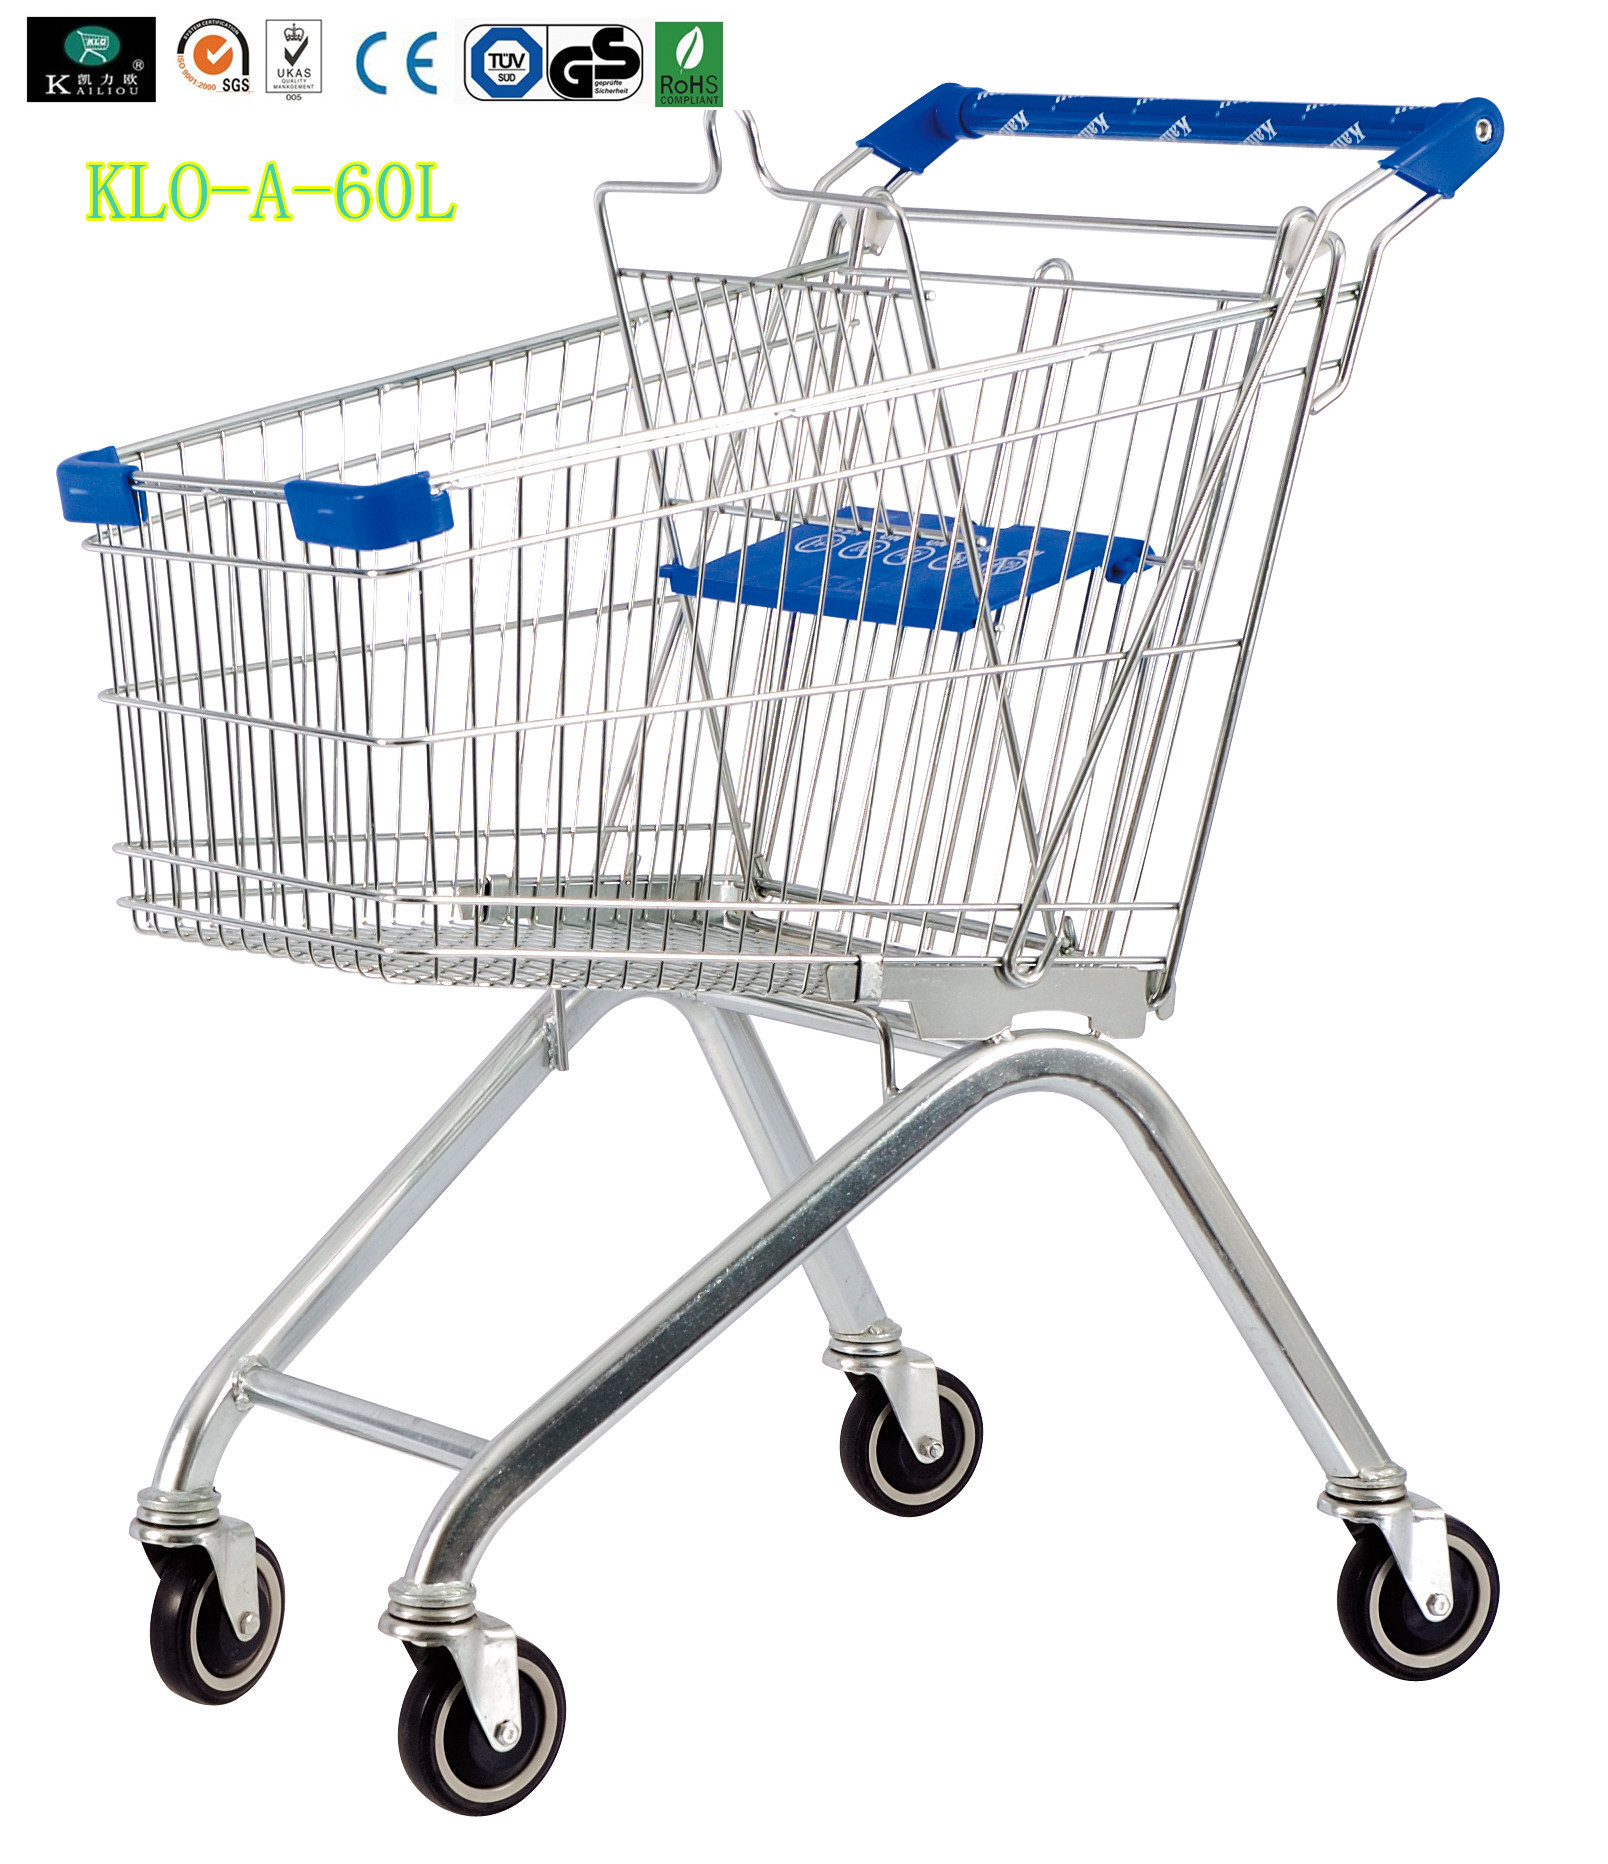 Small Portable Chrome Plated Steel Shopping Carts 60L / Supermarket Push Cart